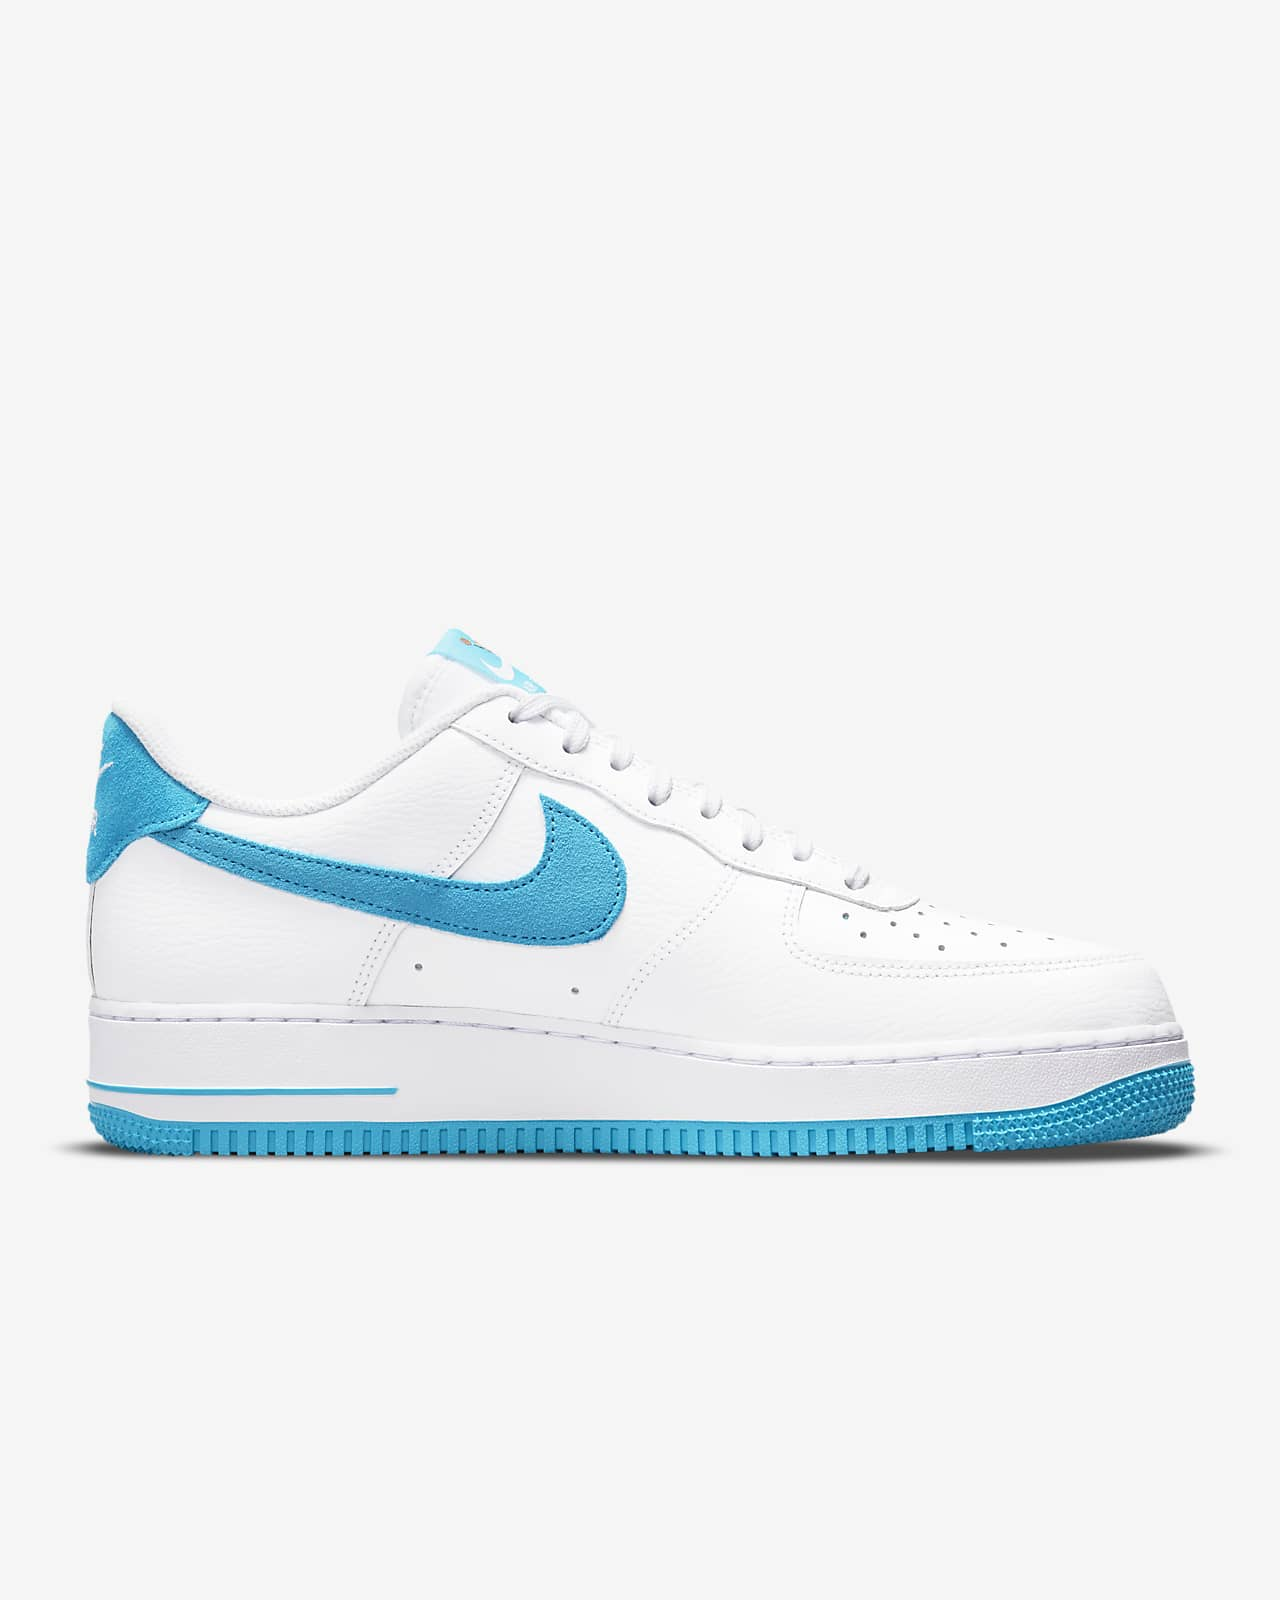 Chaussure Nike Air Force 1 '07 x Space Jam : A Legacy pour Homme